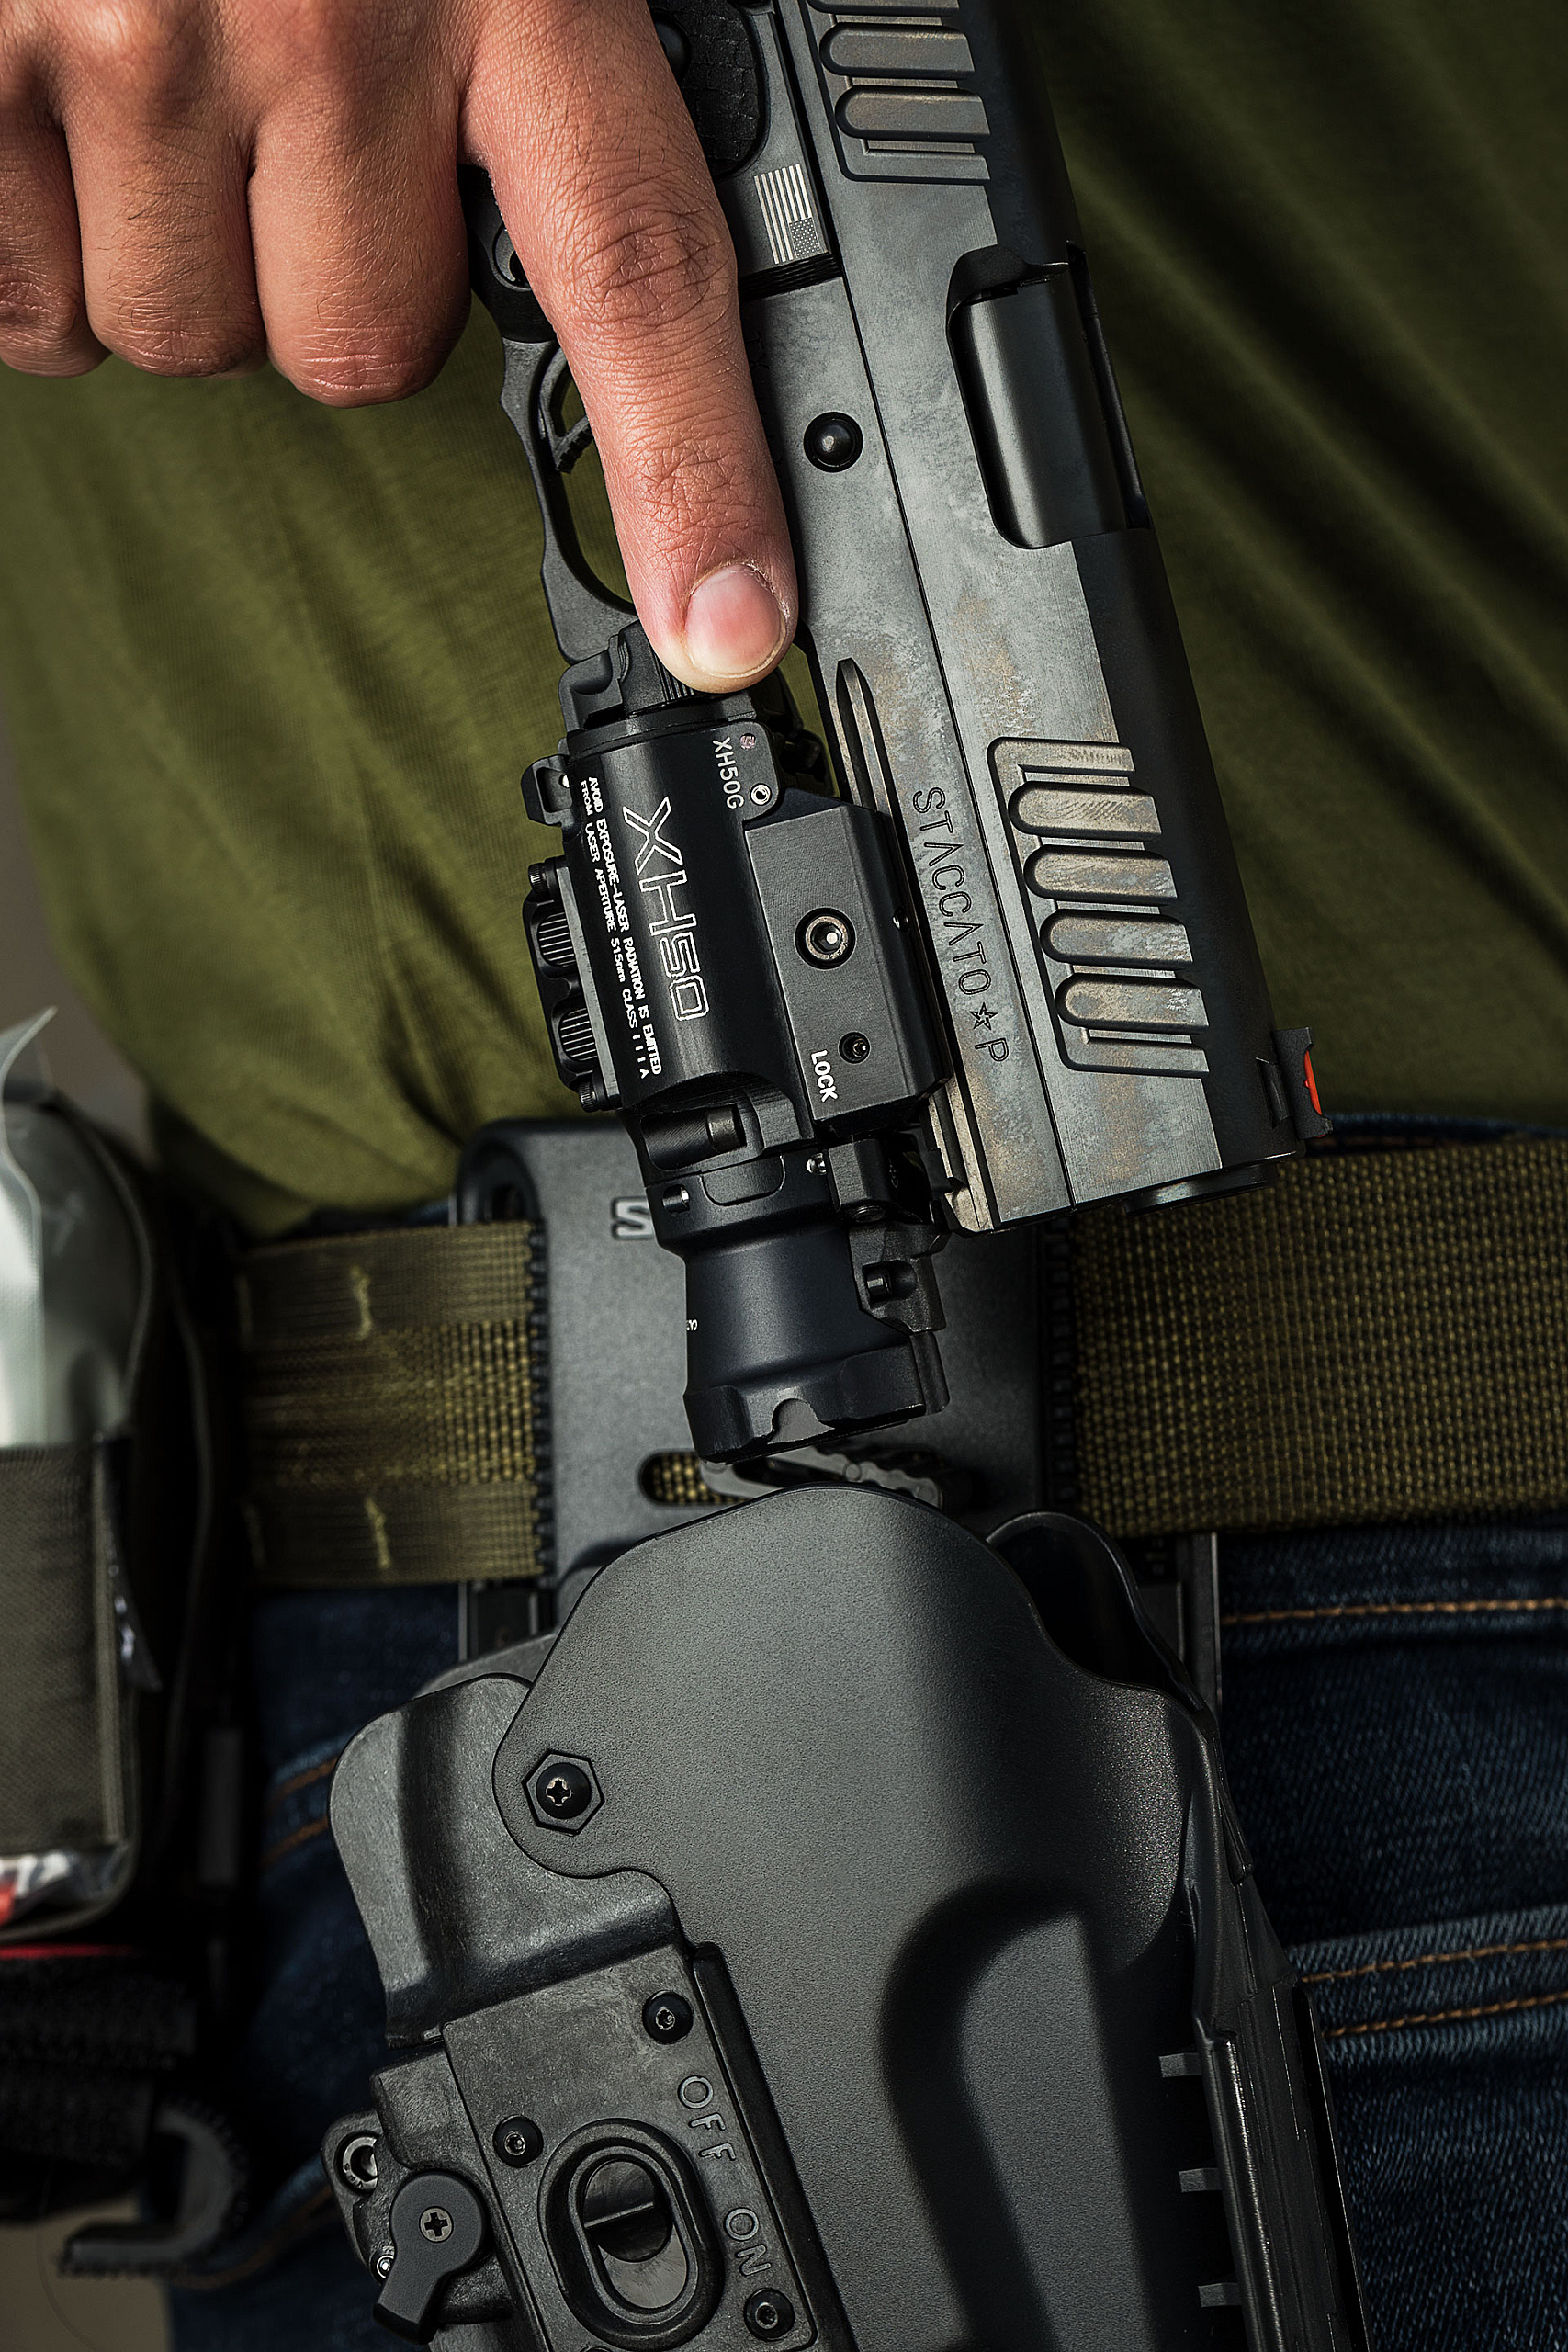 SureFire XH50 in MasterFire Pro holster